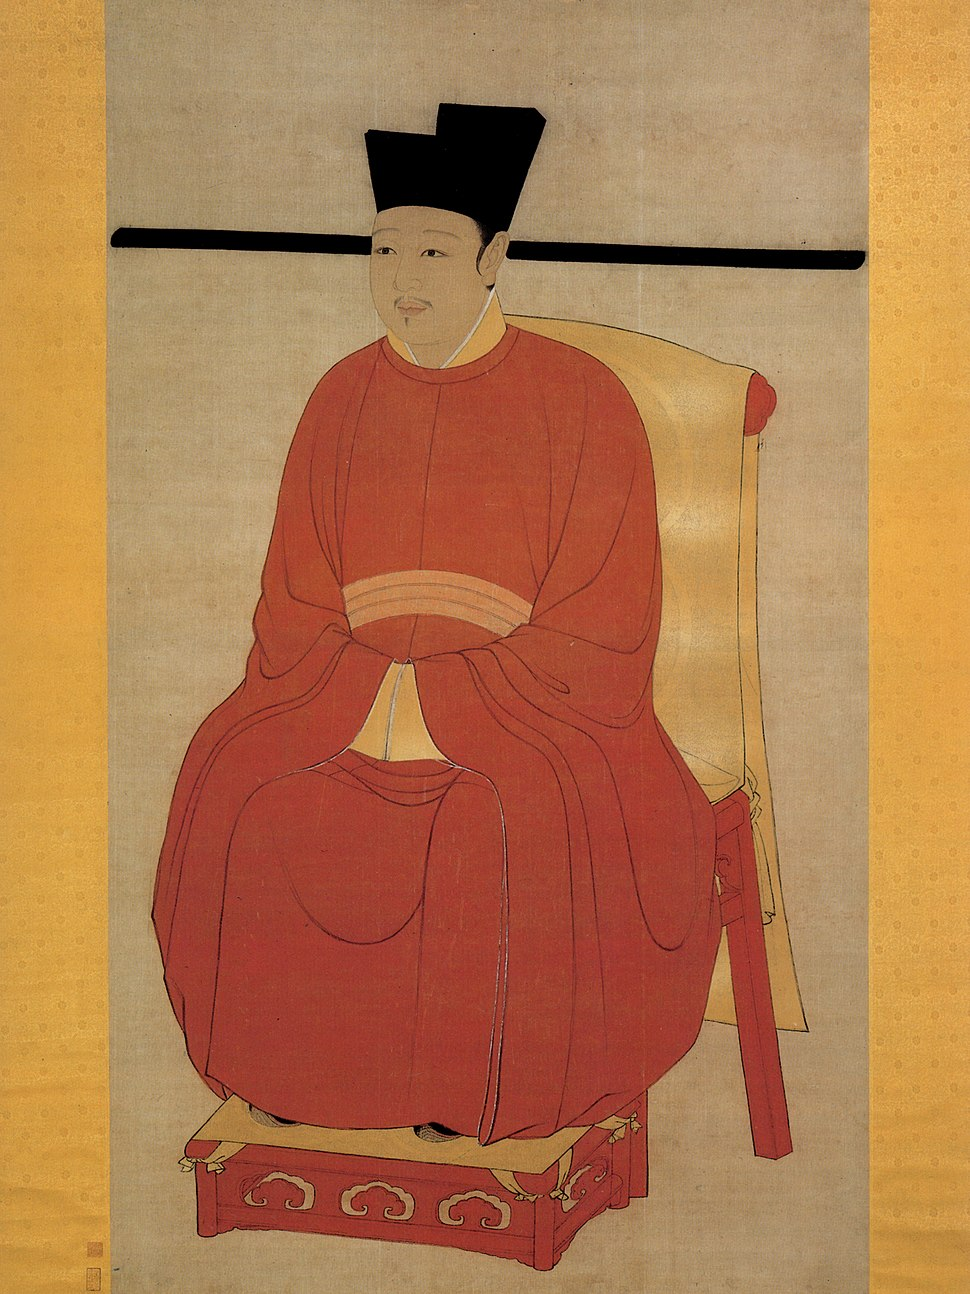 Emperor Huizong sitting on his throne